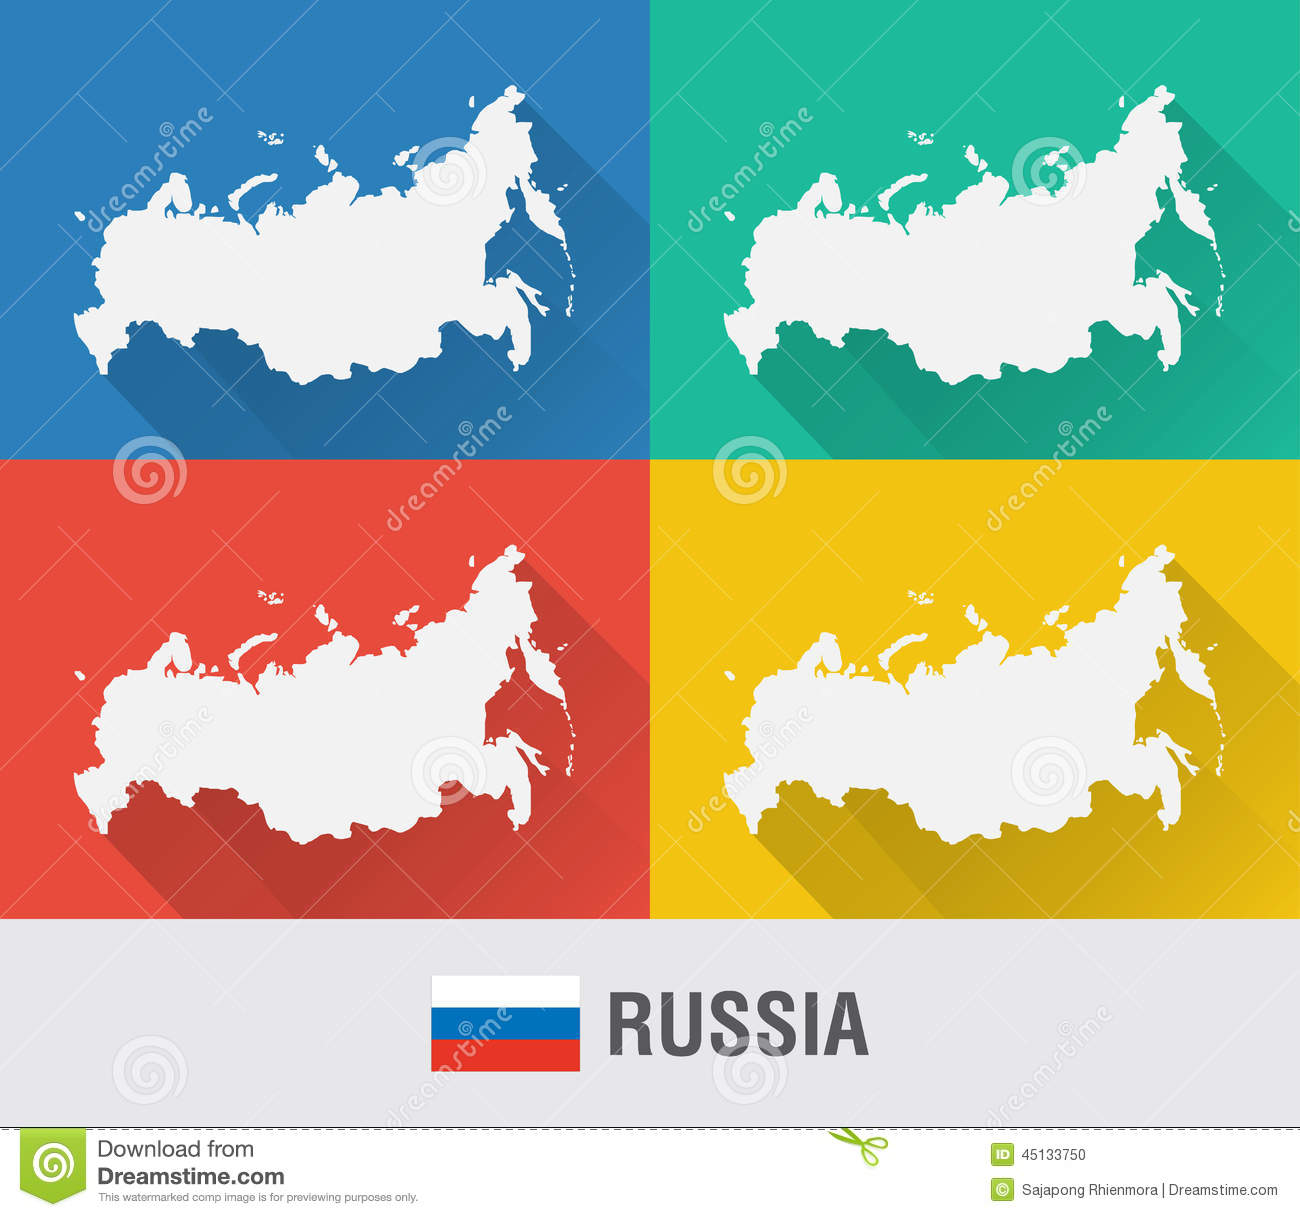 Russia World Map In Flat Style With Colors Stock Vector Image - Russia on a world map